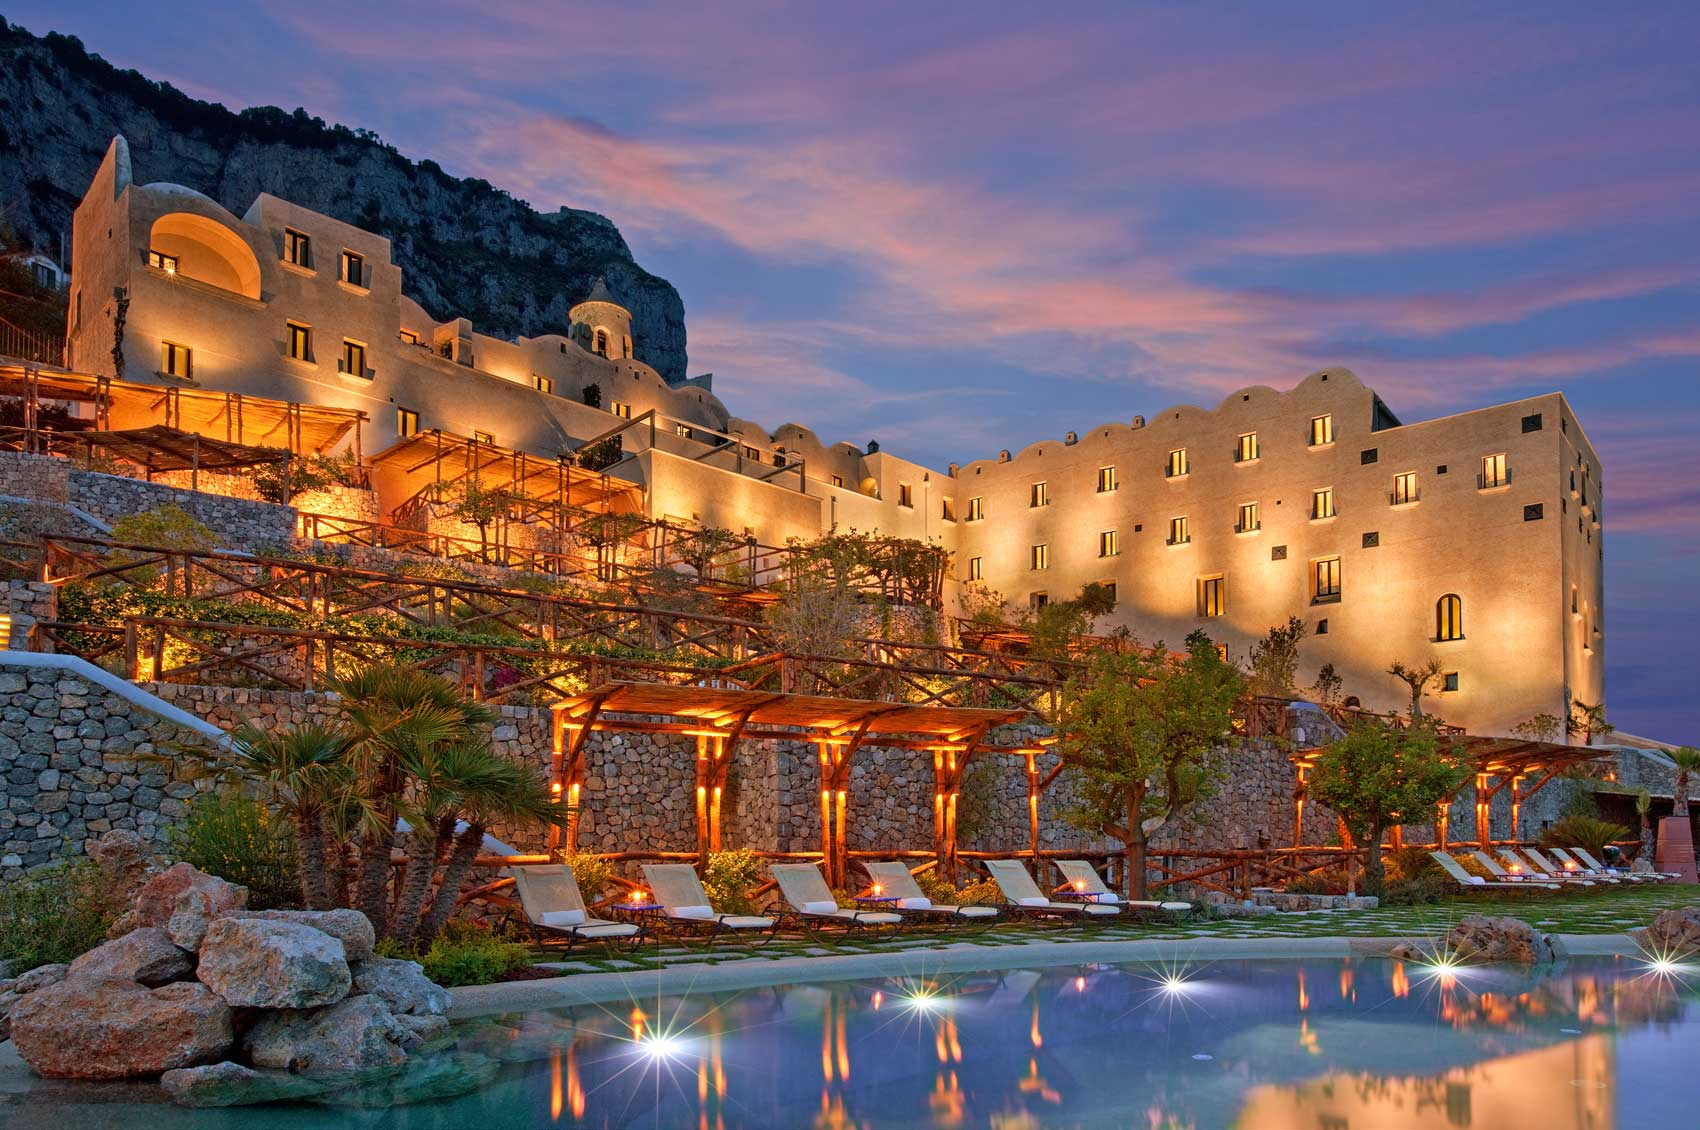 Monastero santa rosa h tel de charme c te amalfitaine for Great small hotels italy